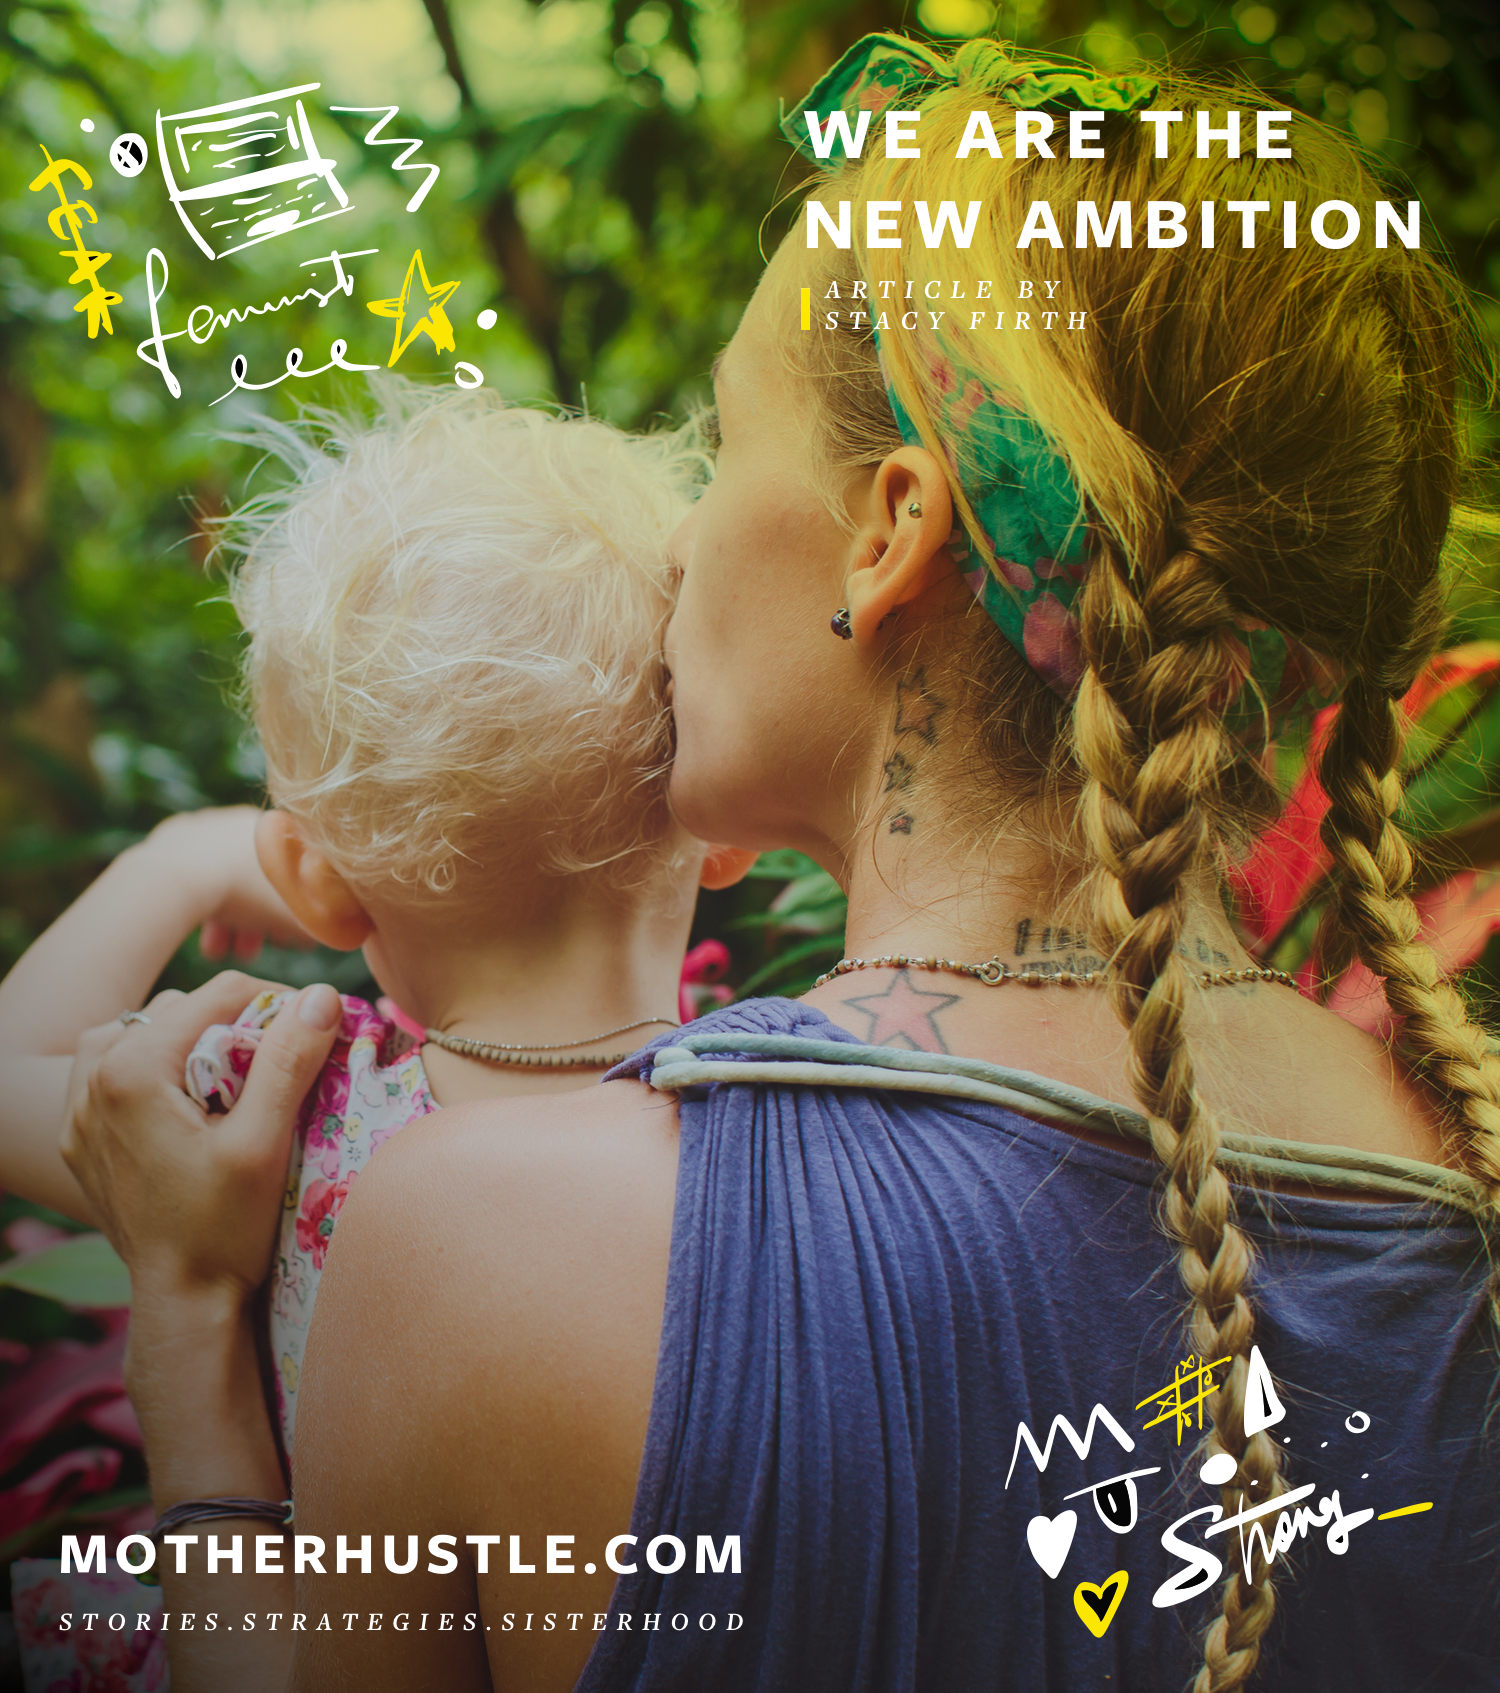 We Are The New Ambition - Stacy Firth MotherHustle